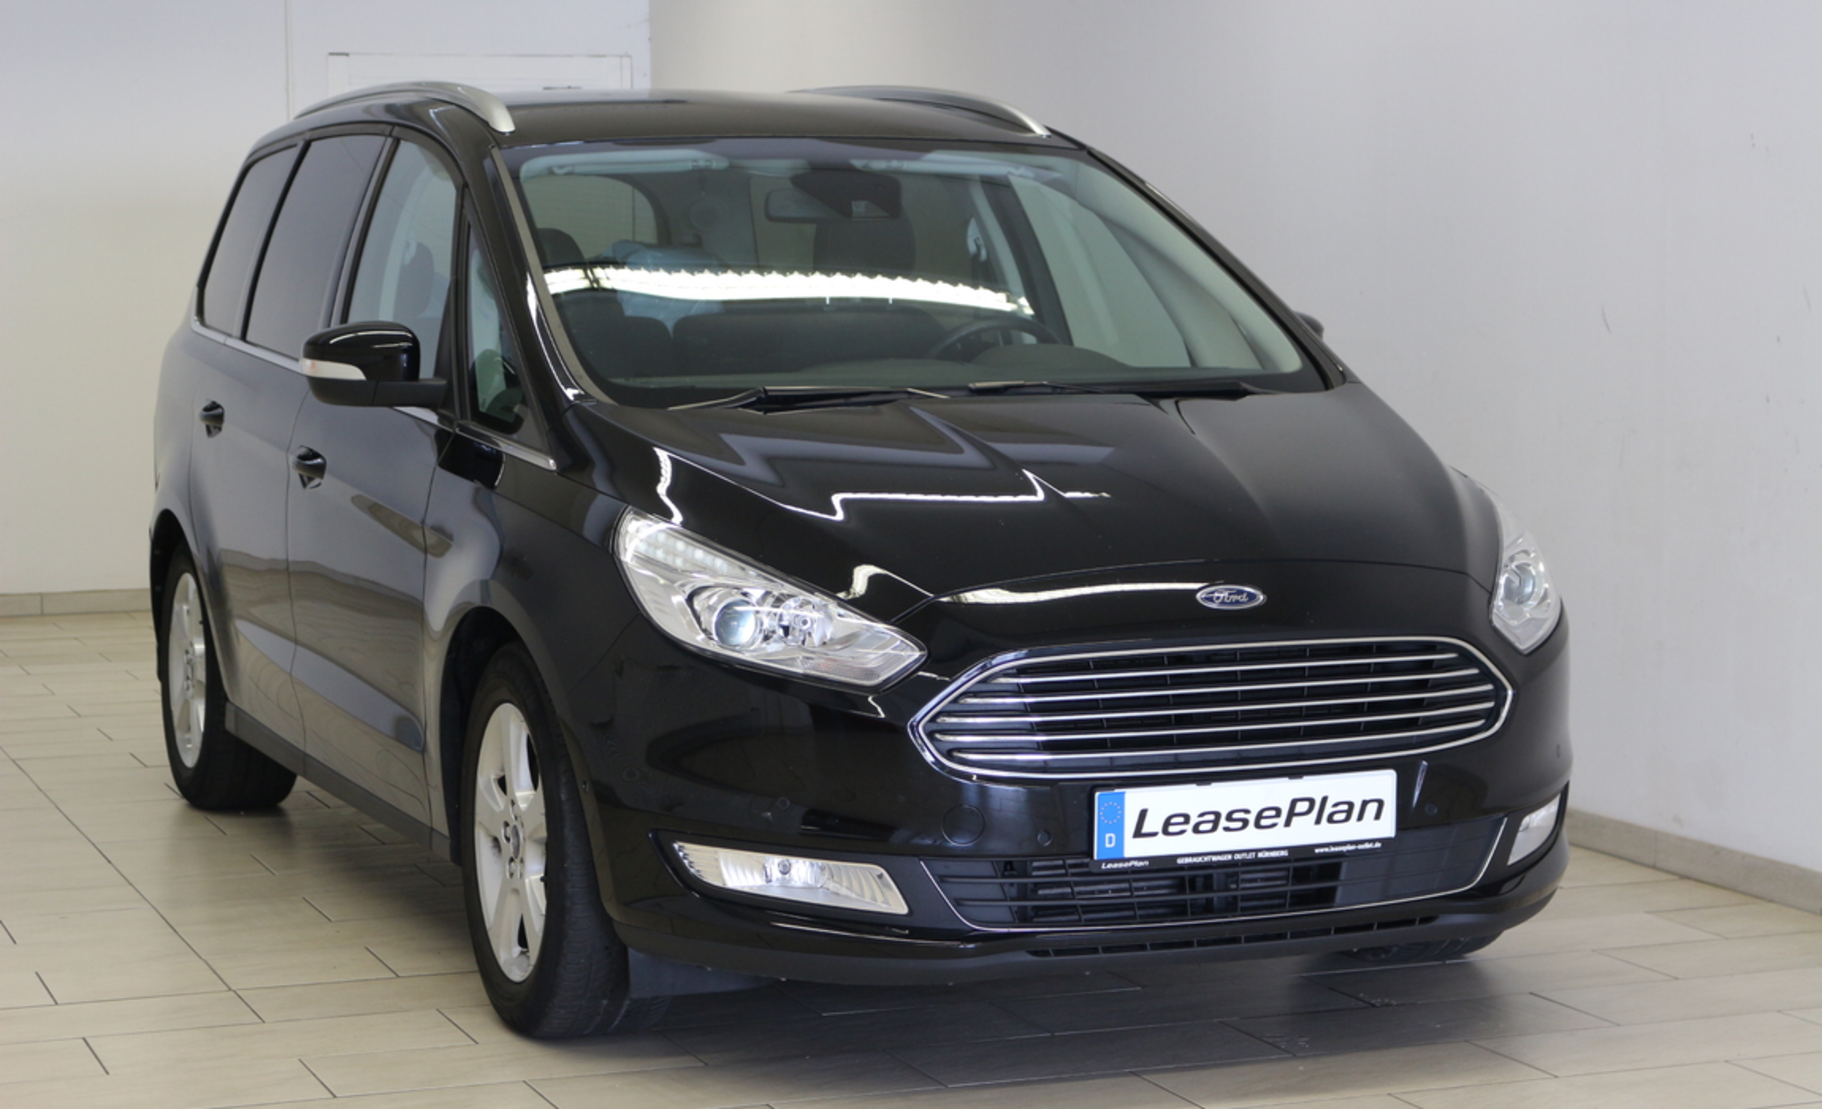 Ford Galaxy 2.0 TDCi Titanium (593179) detail1